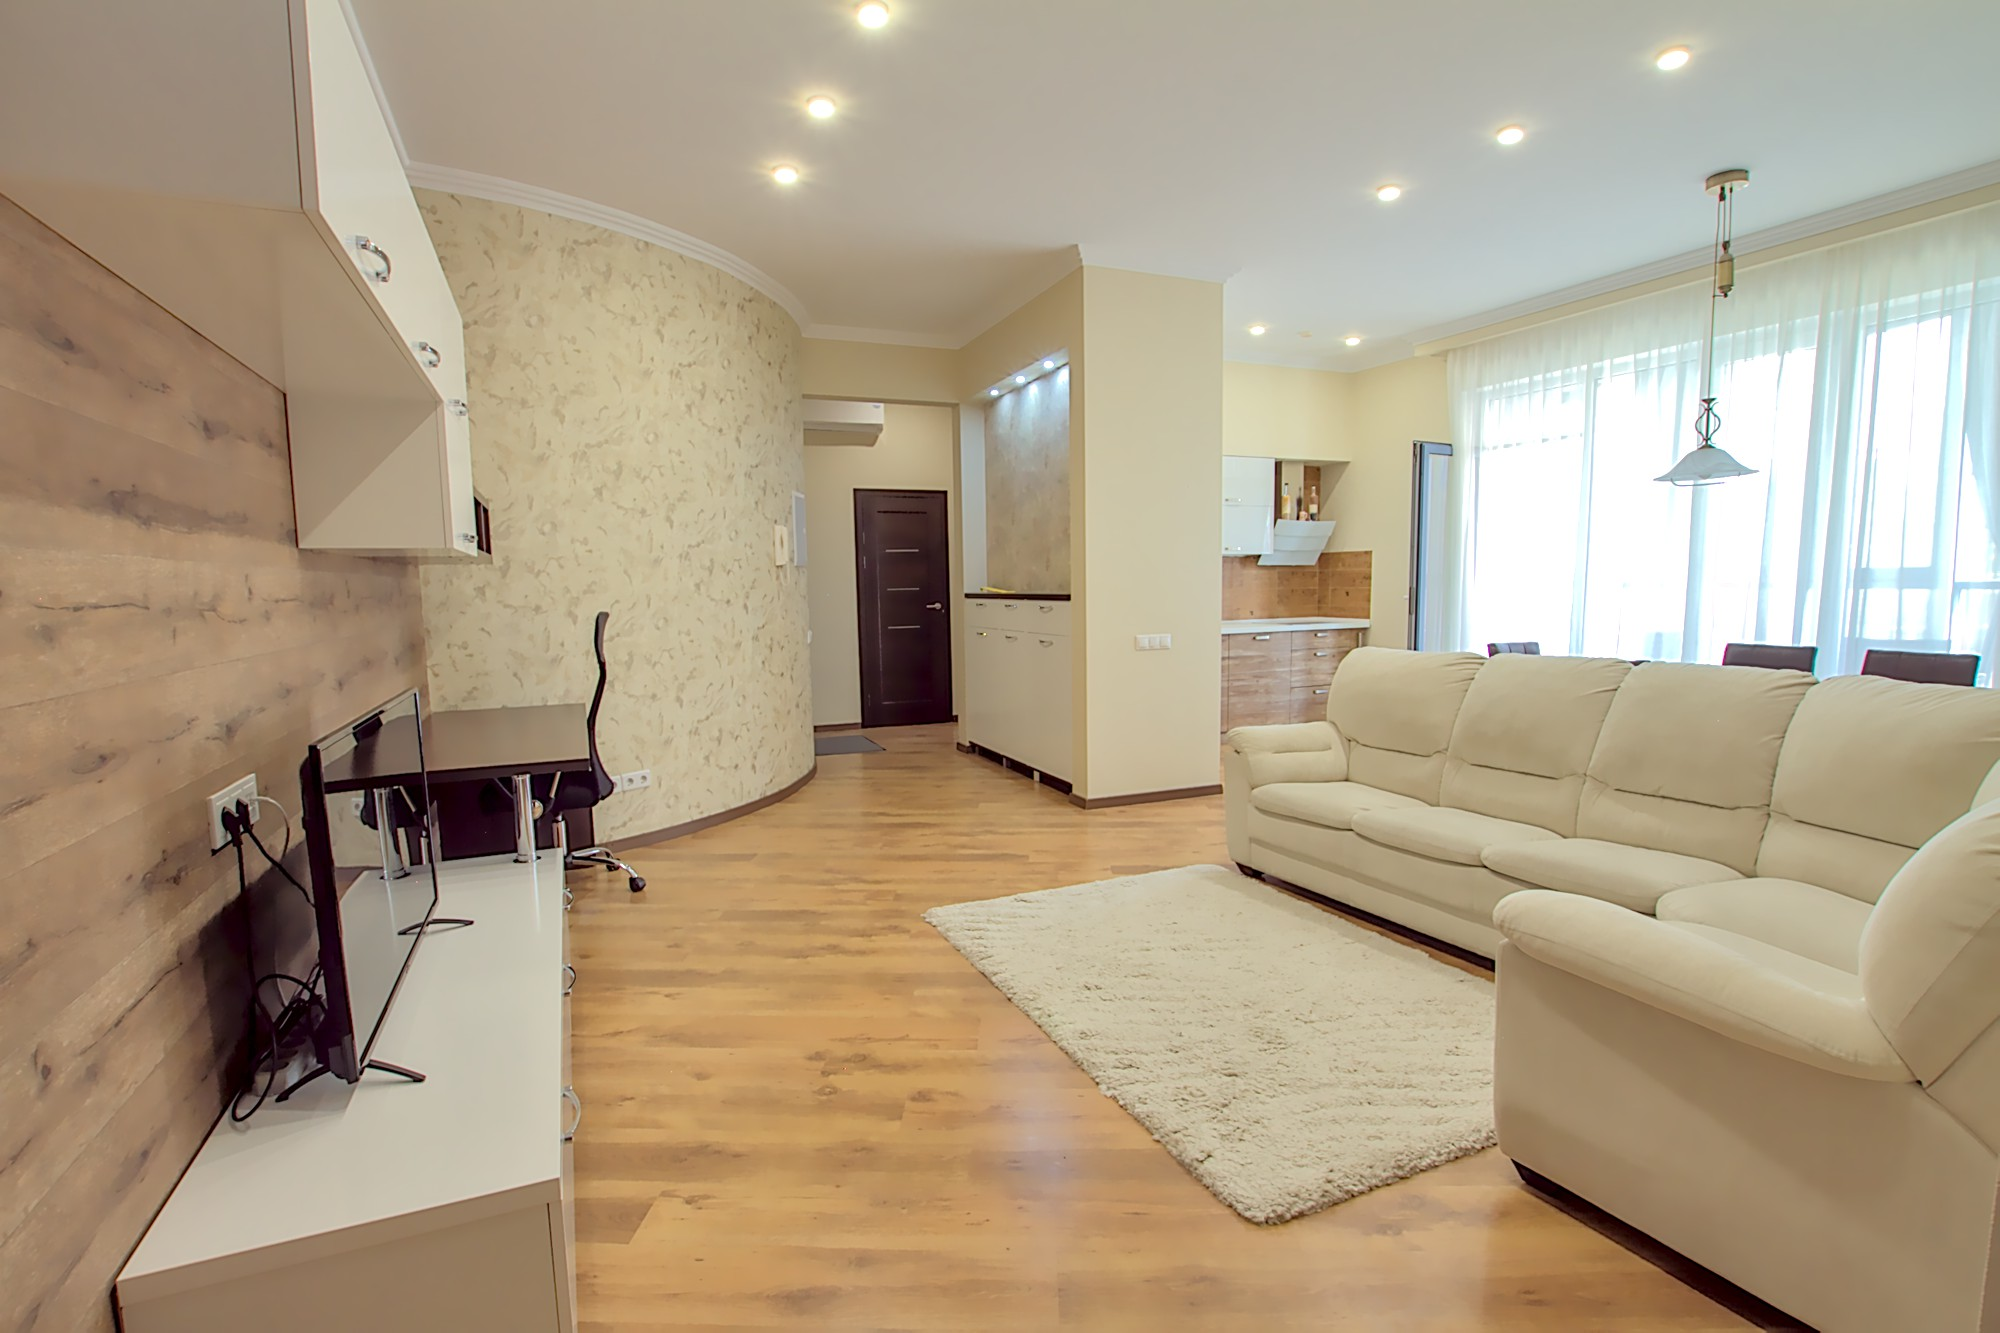 Rent_apartment-in Chisinau_at_Coliseum.jpg